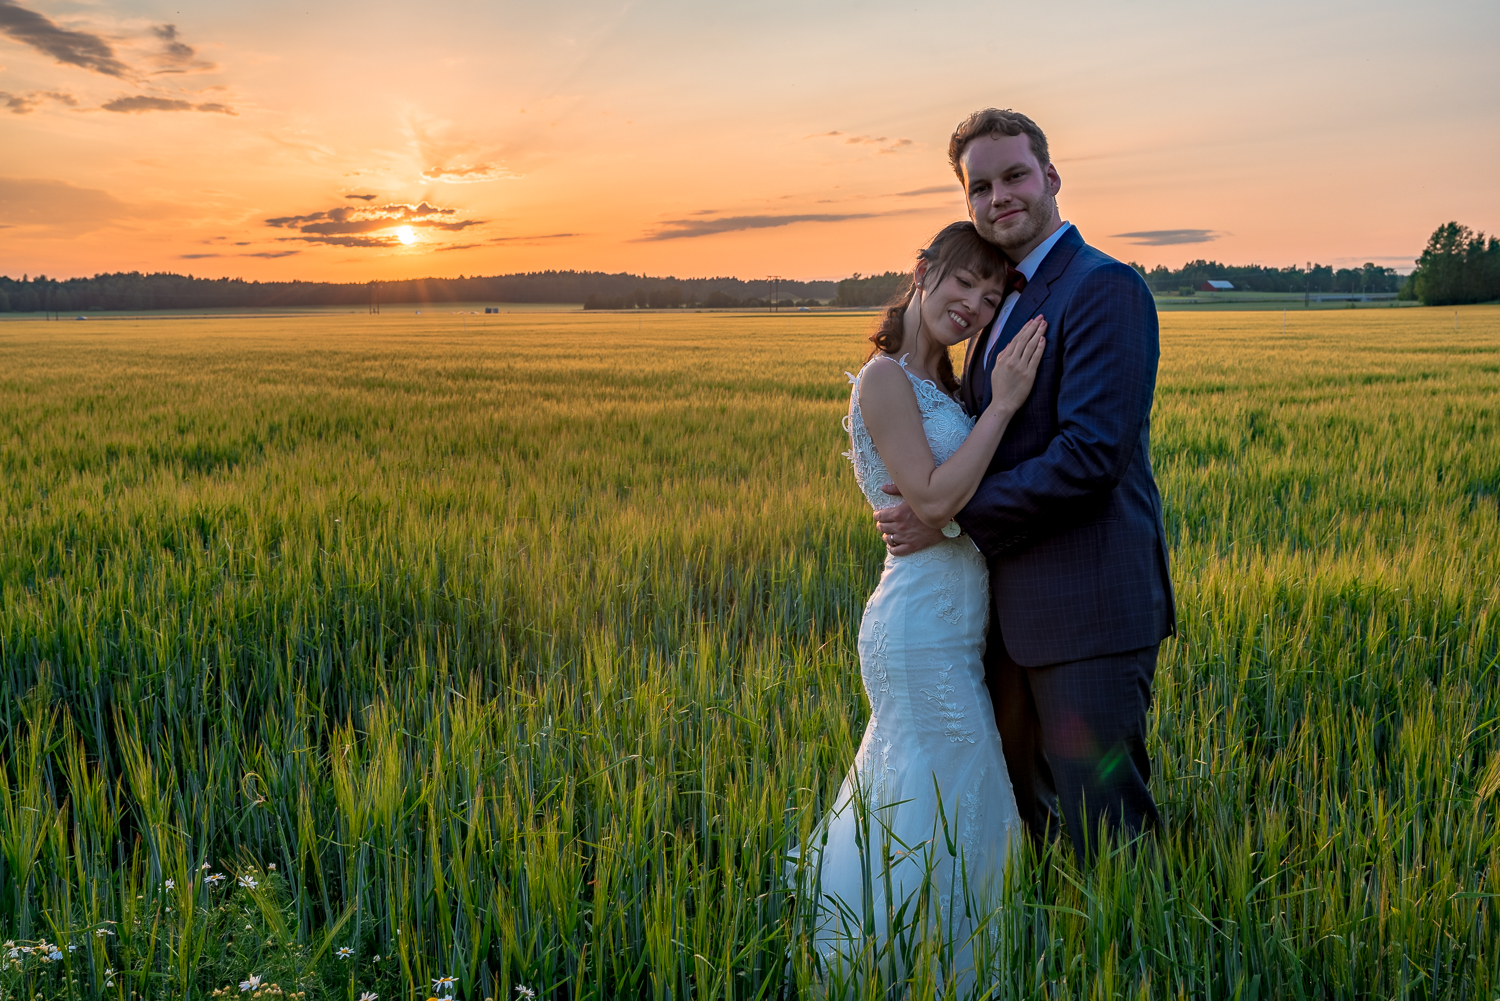 Wedding sunset photo session in the endless fields